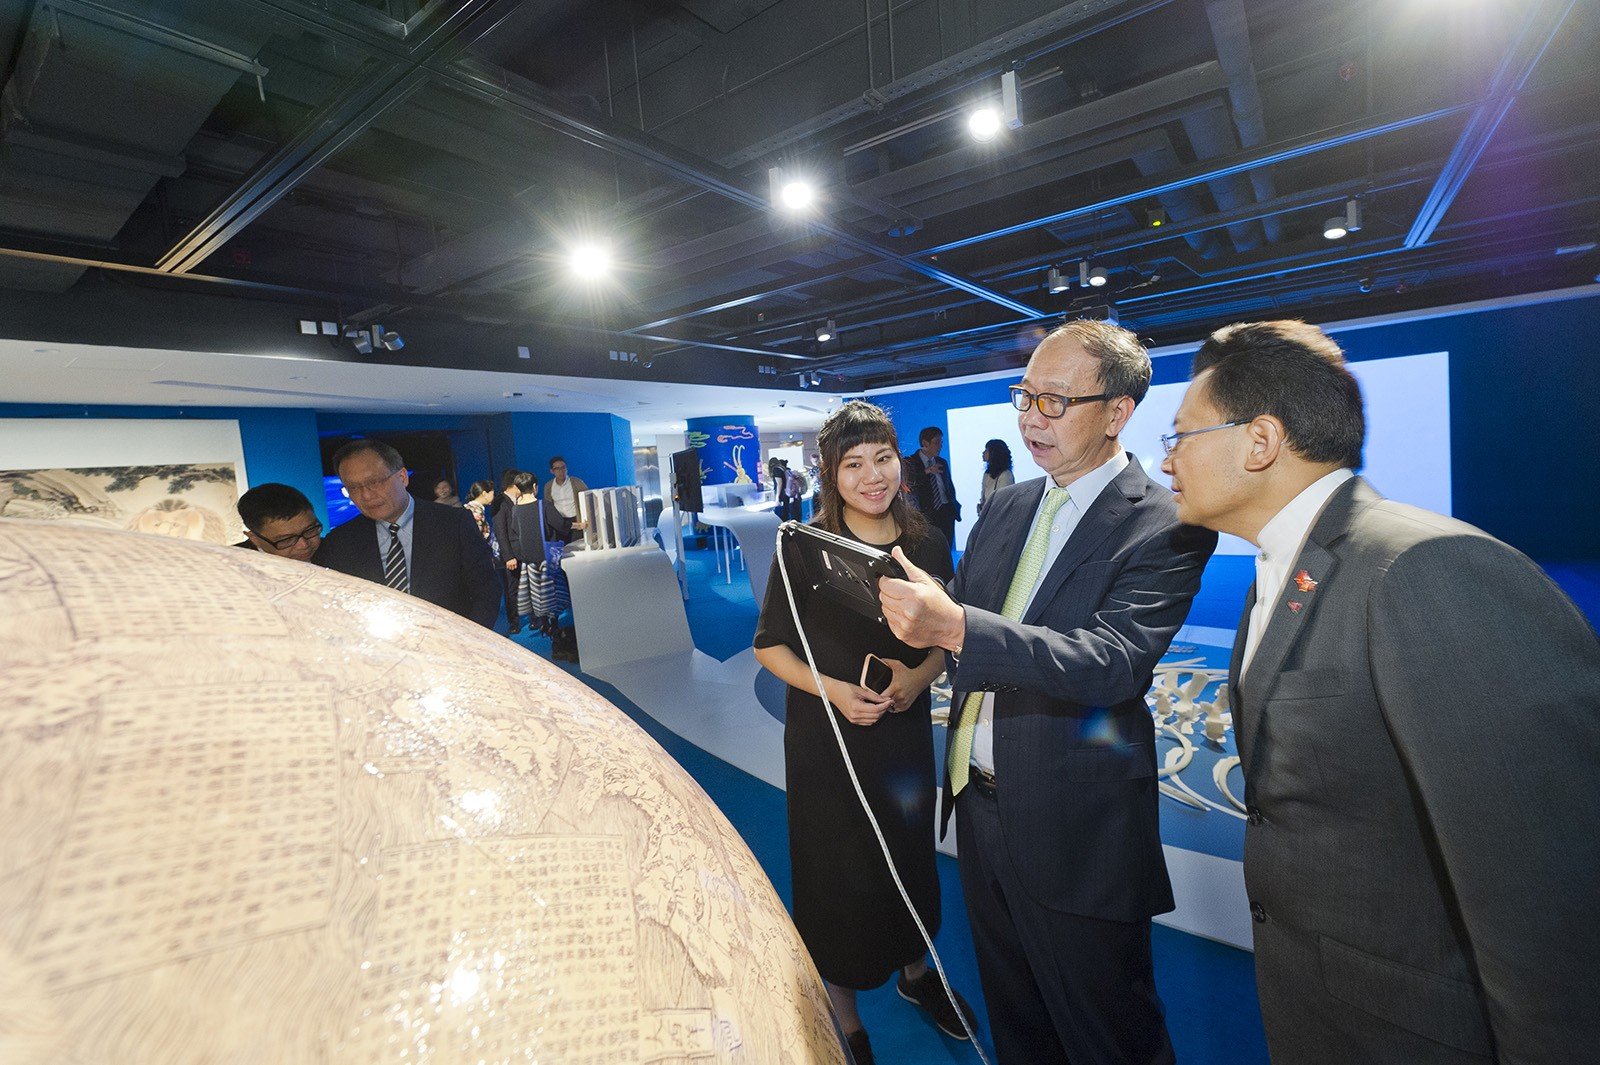 Dr Chung Shui-ming (second from right), Pro-Chancellor, visits the exhibition with other guests.